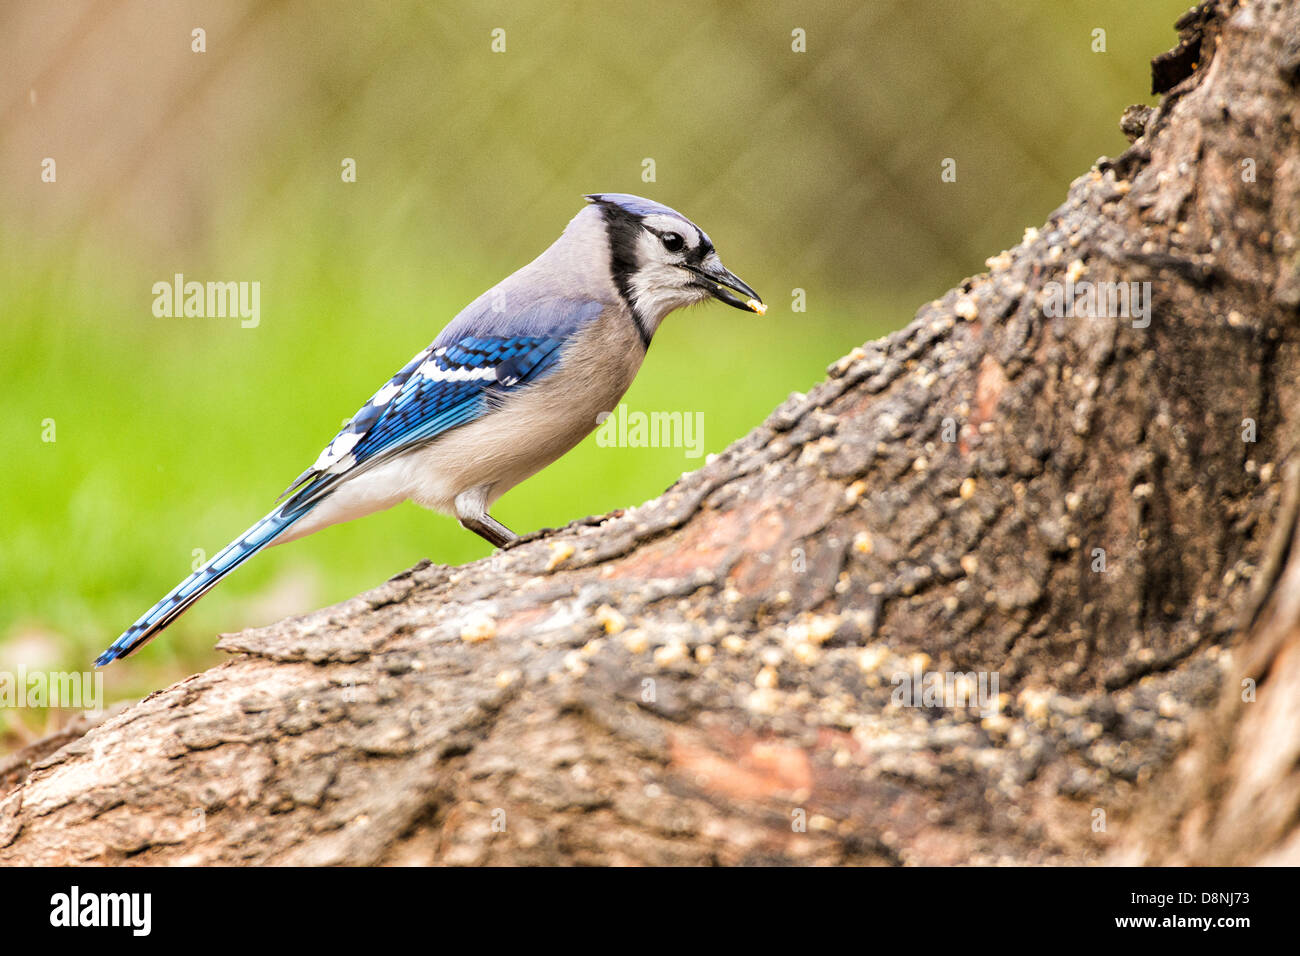 Blue Jay foraging for seeds on ground Stock Photo